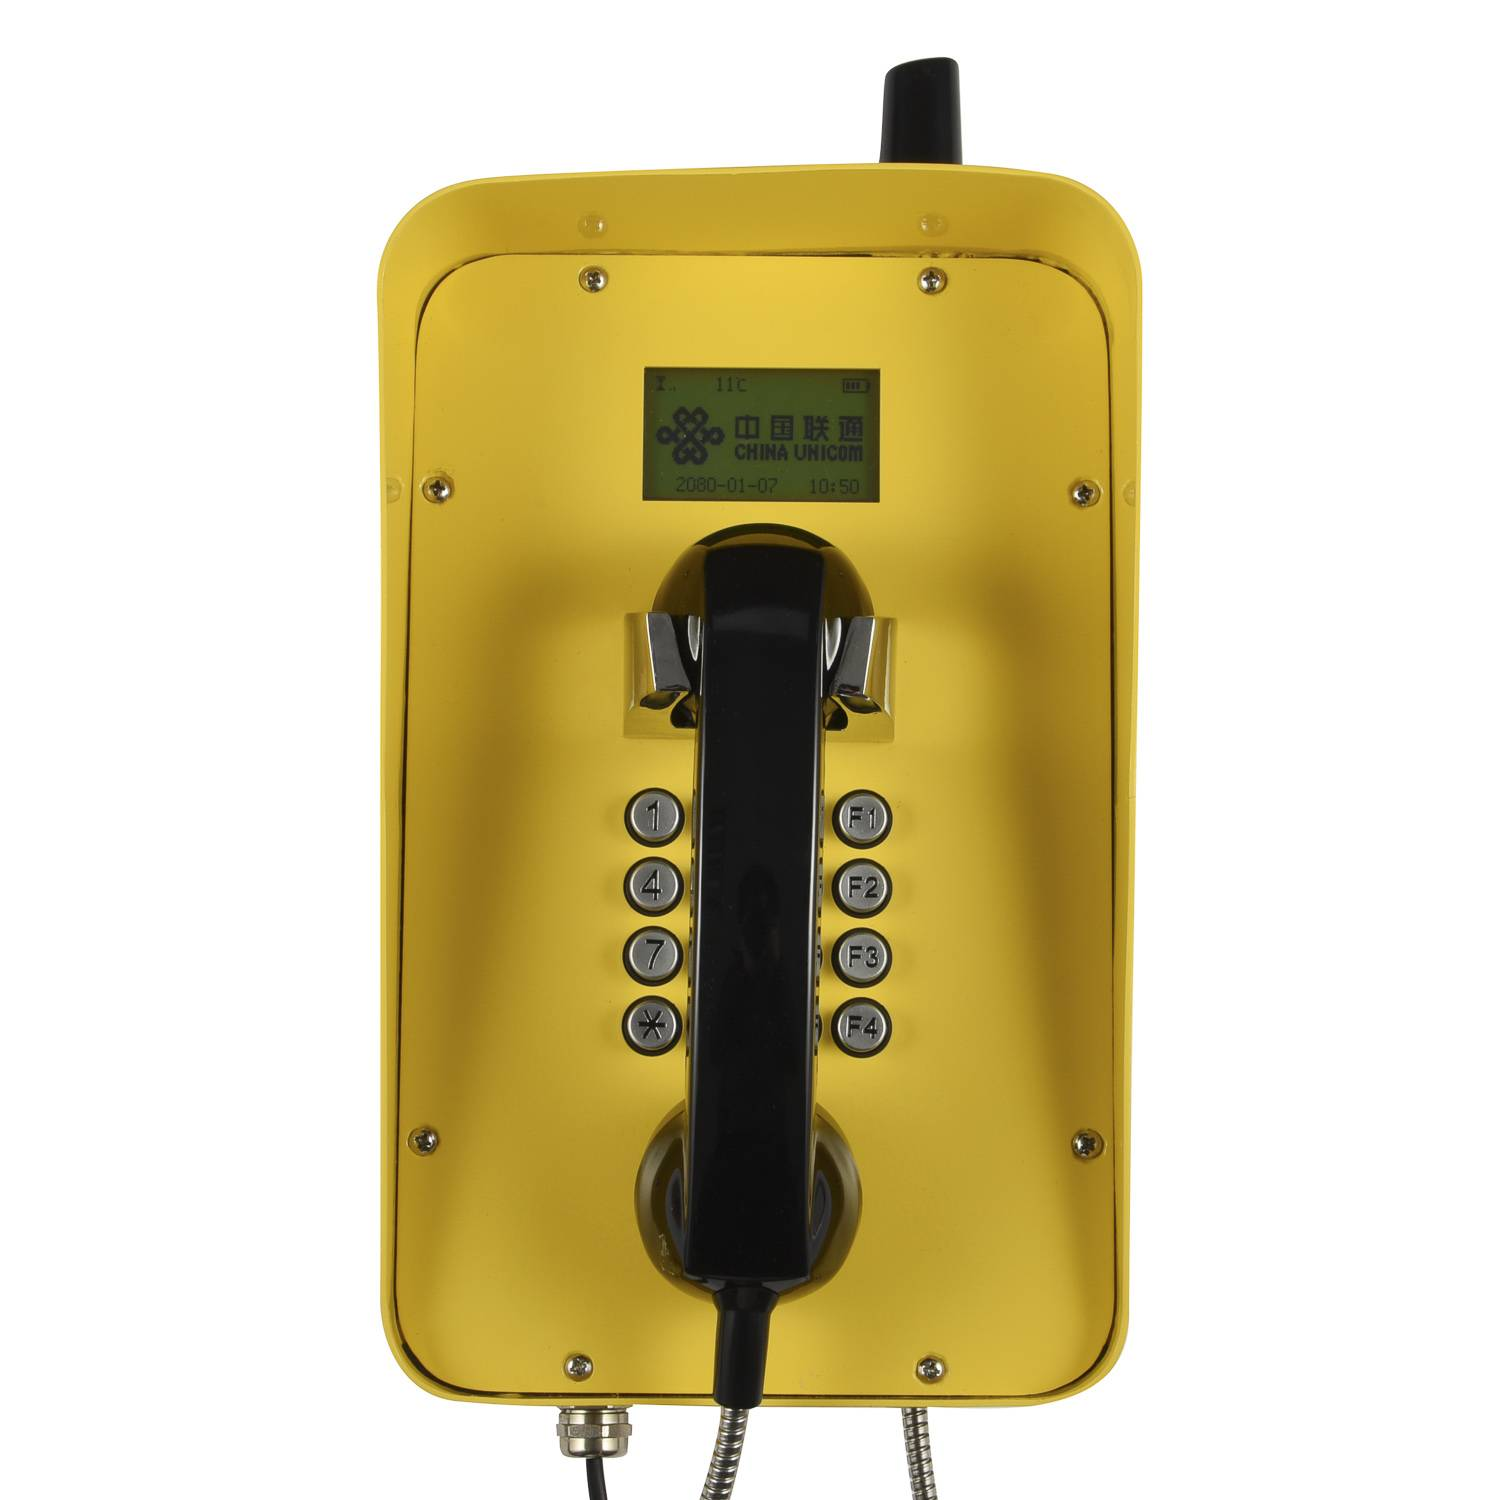 SIM Card GSM Telephone with LCD Display Featured Image